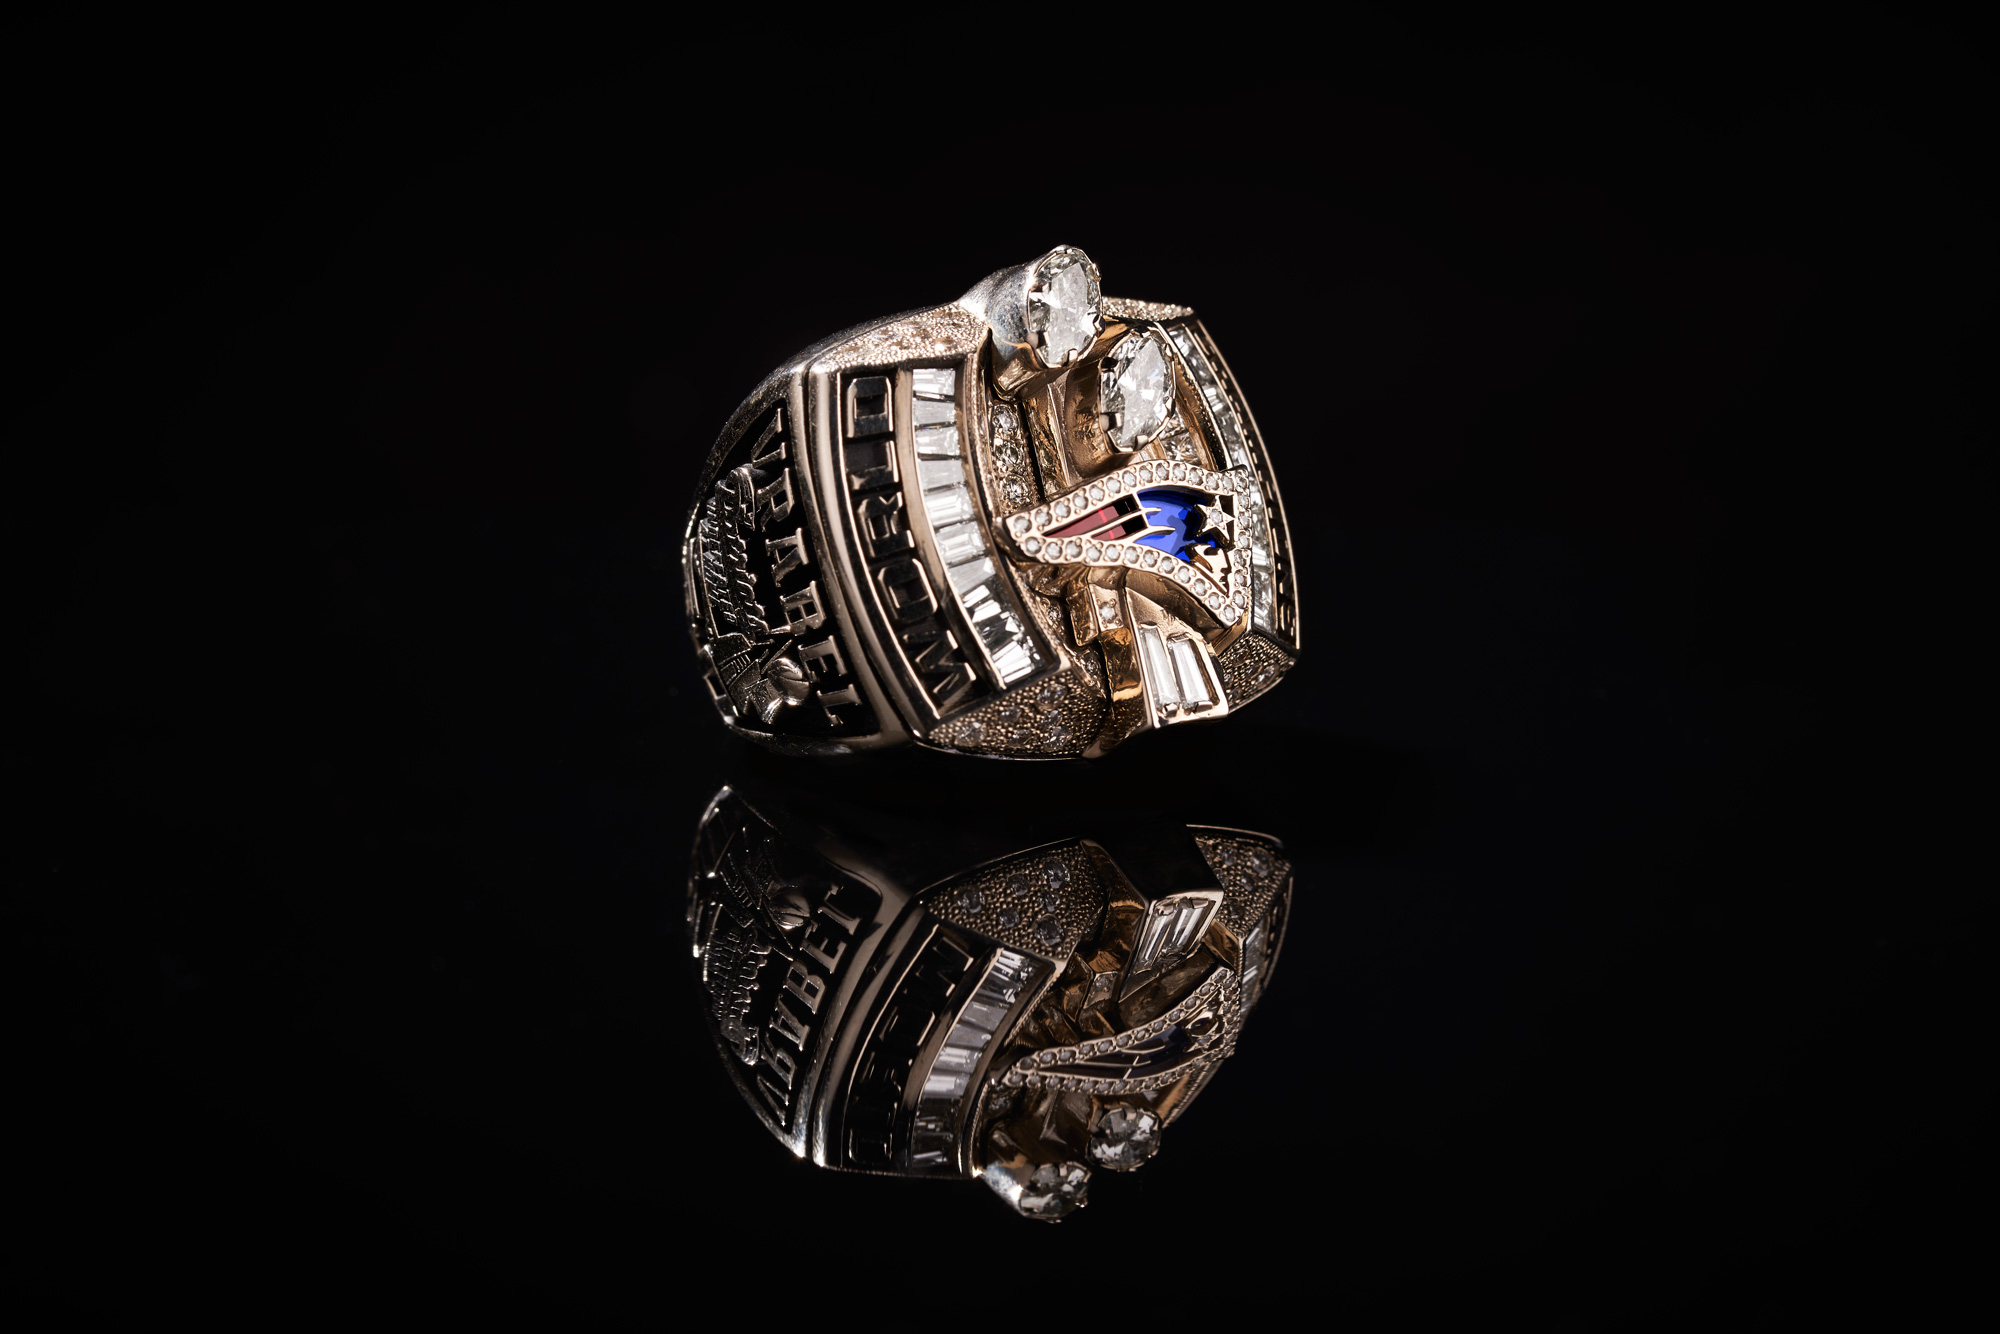 Product-Photograph-of-Super-Bowl-Rings-by-Architectural,-Interior,-and-Product-Photographer-Nick-McGinn-1.web.jpg